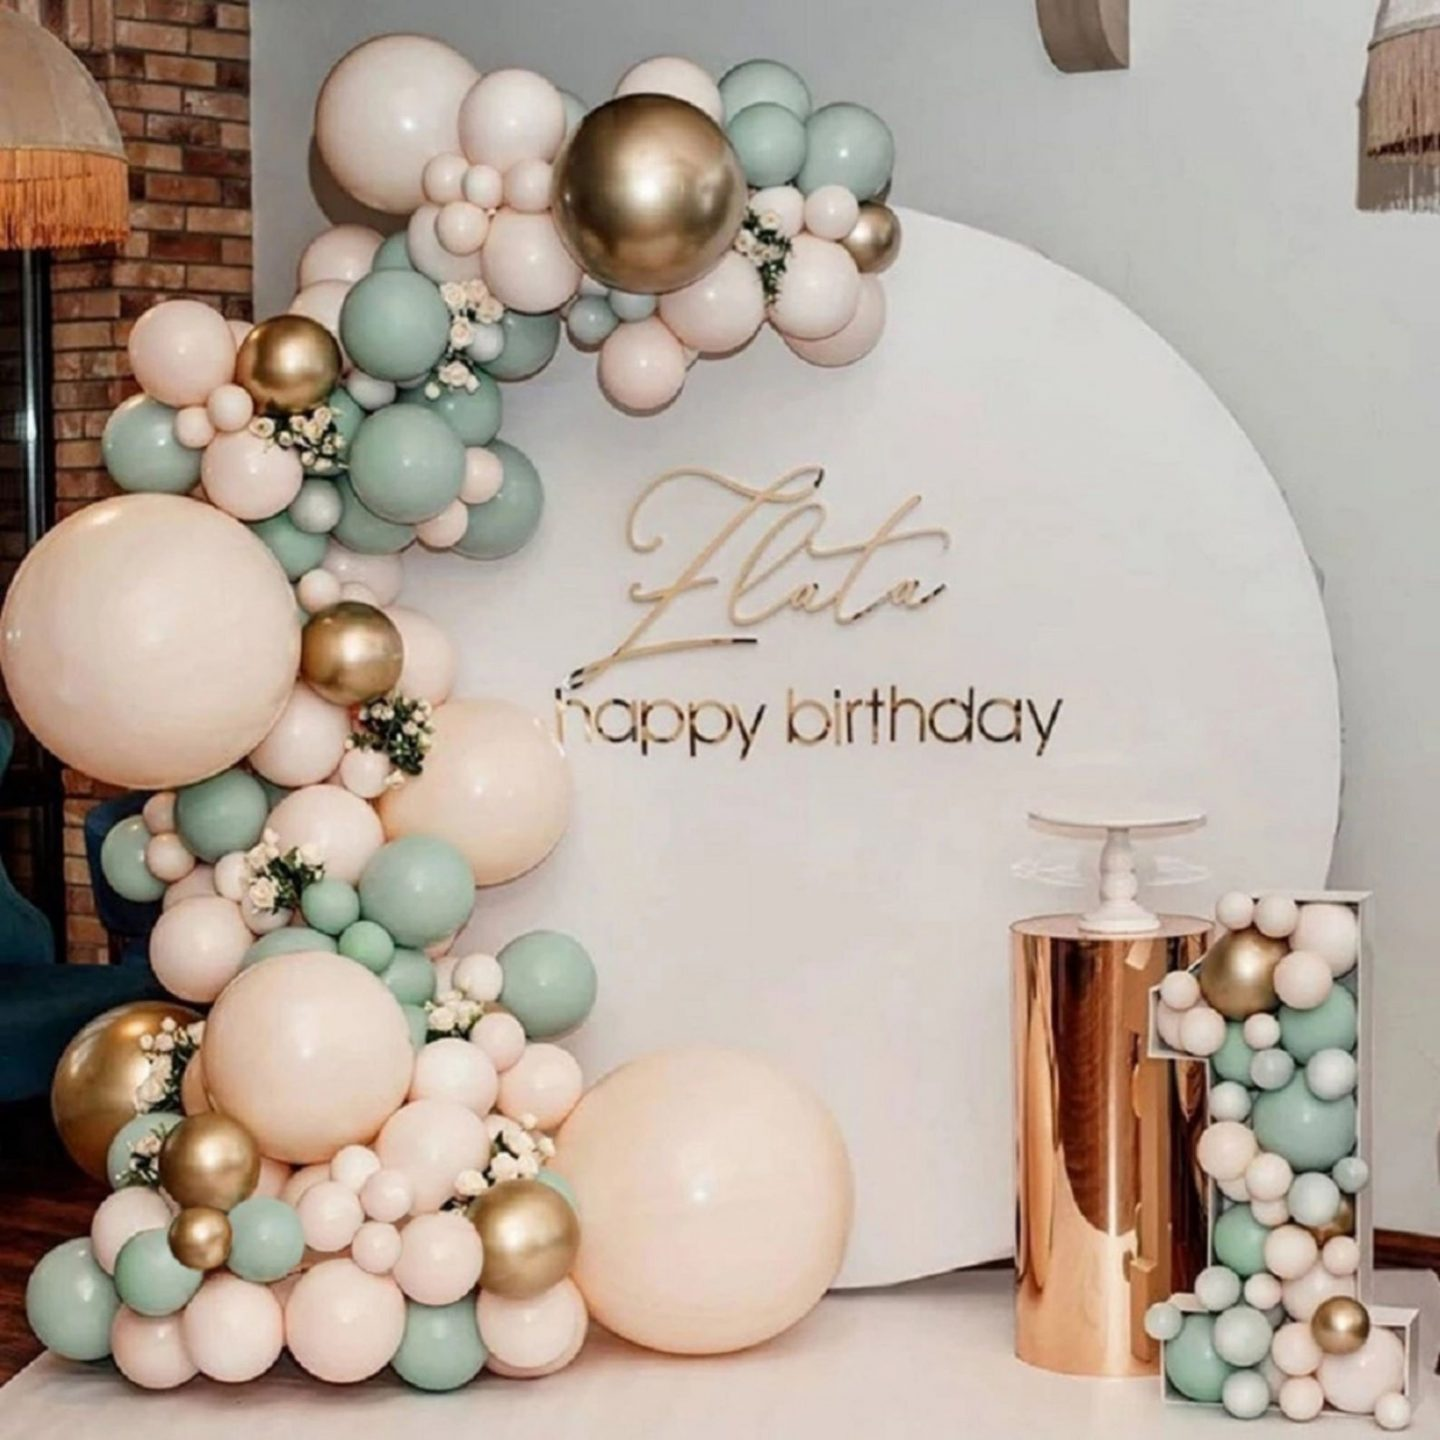 Cream and sage green birthday party balloons with gold details